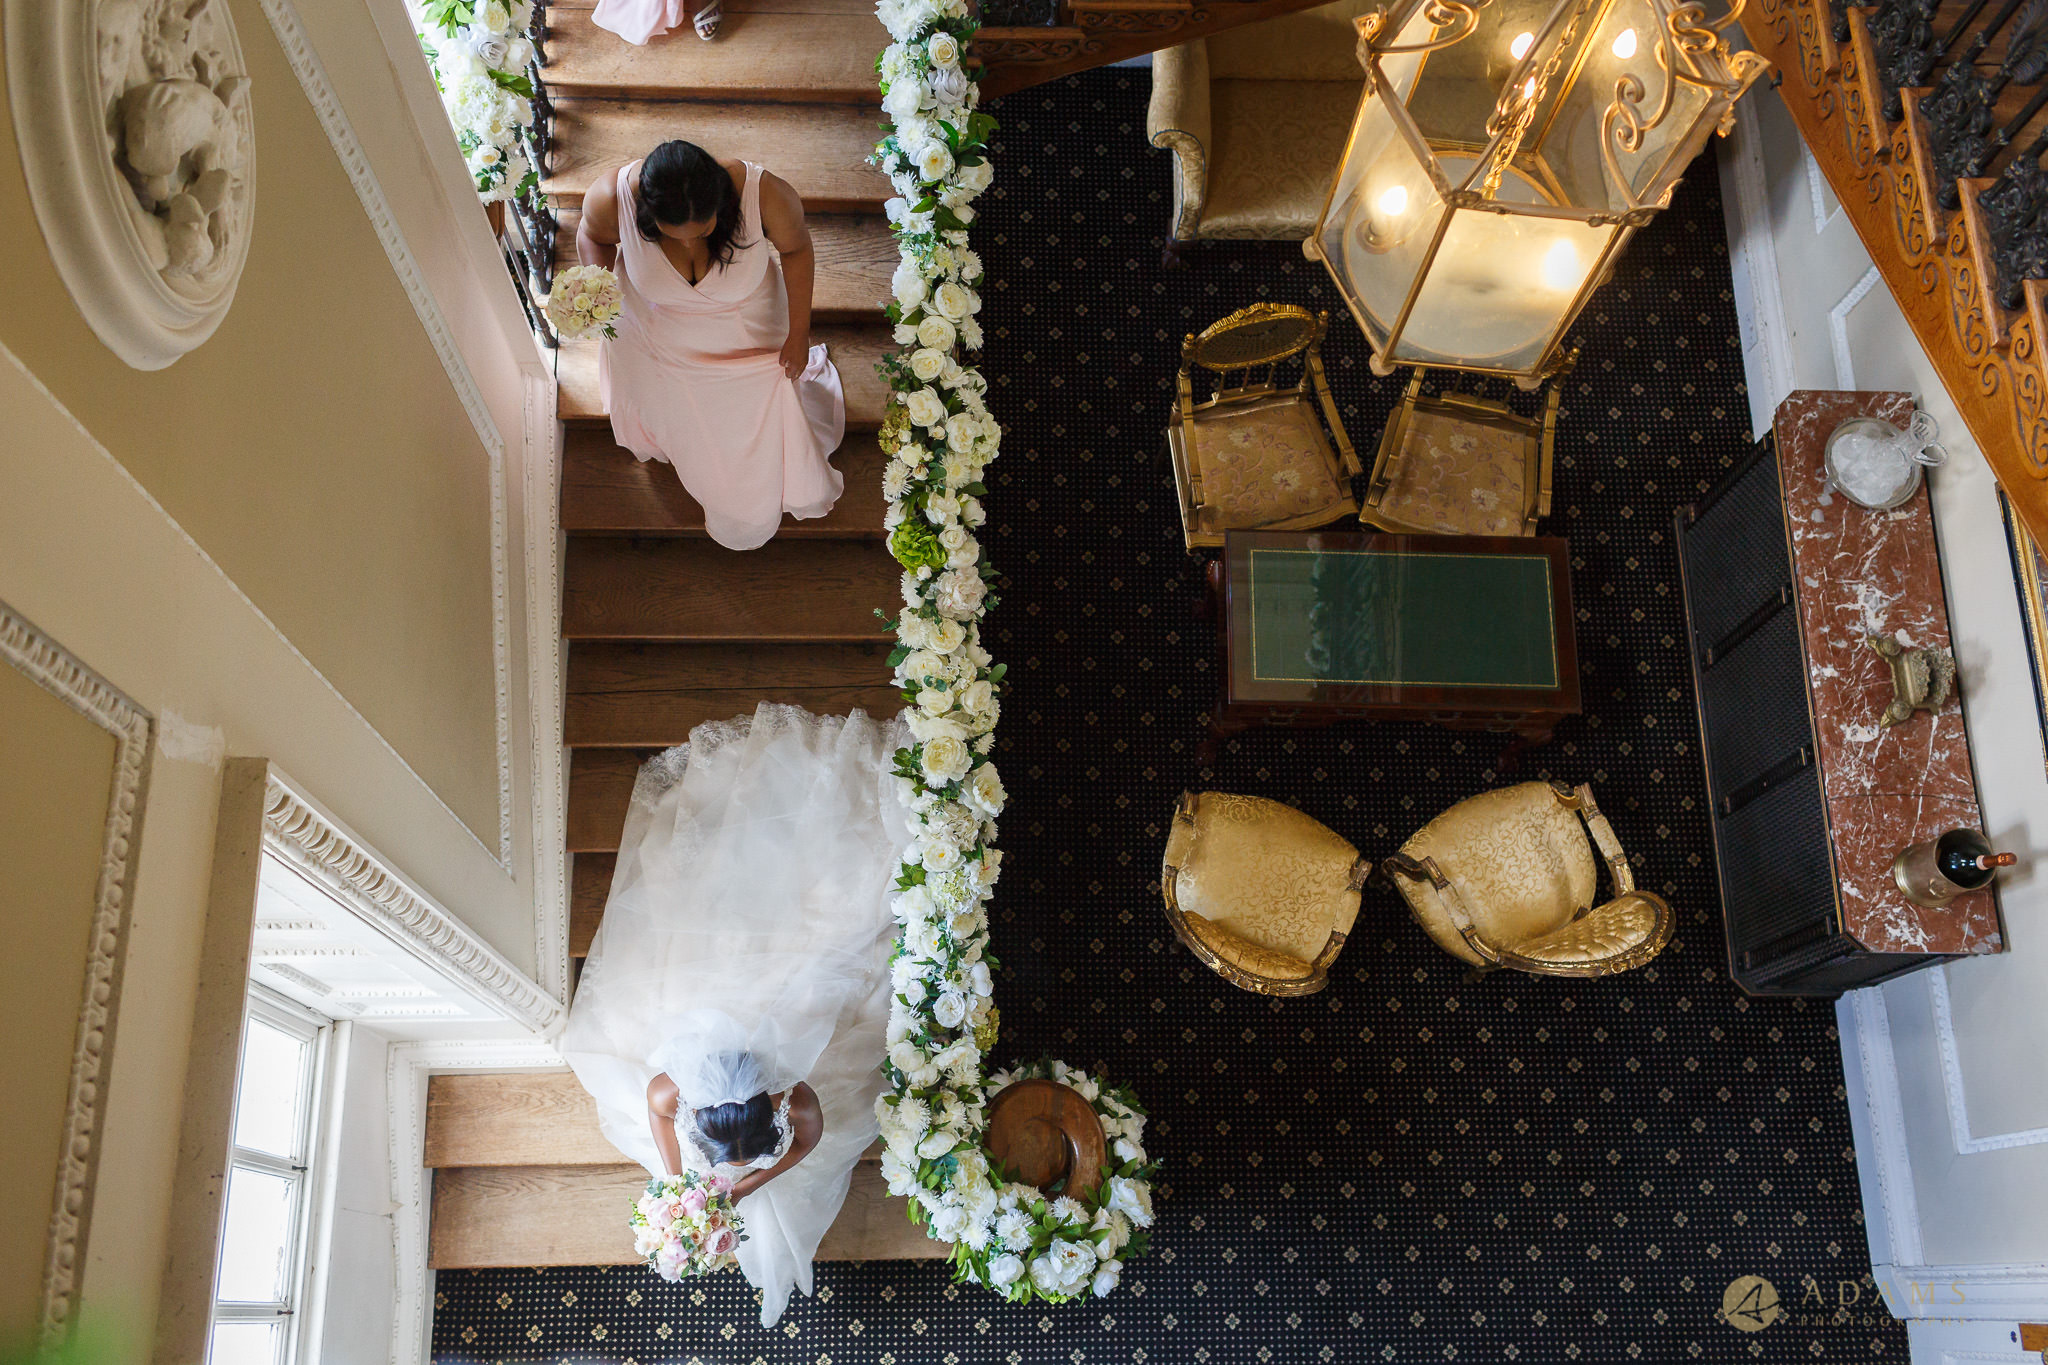 Shot from above of the bride on the stairs